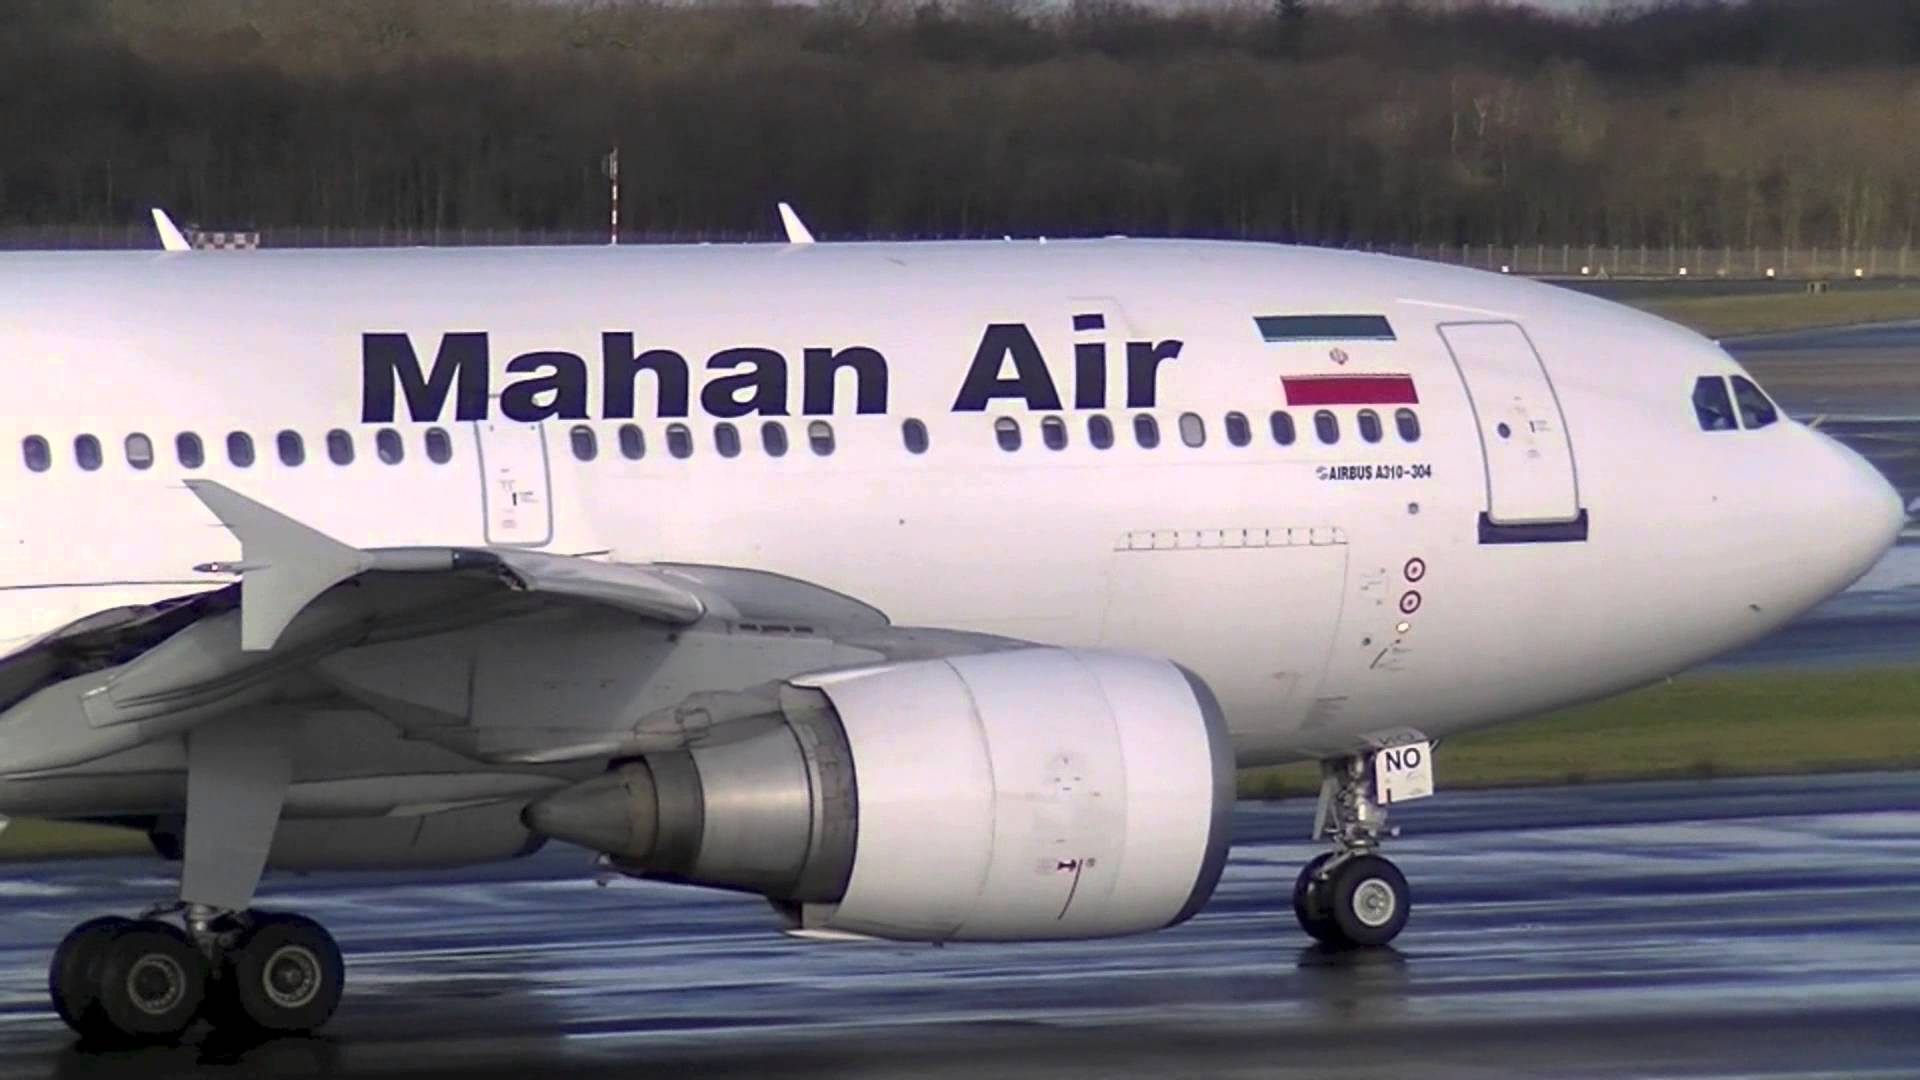 Iranian airline Mahan Air enters the Ukrainian market